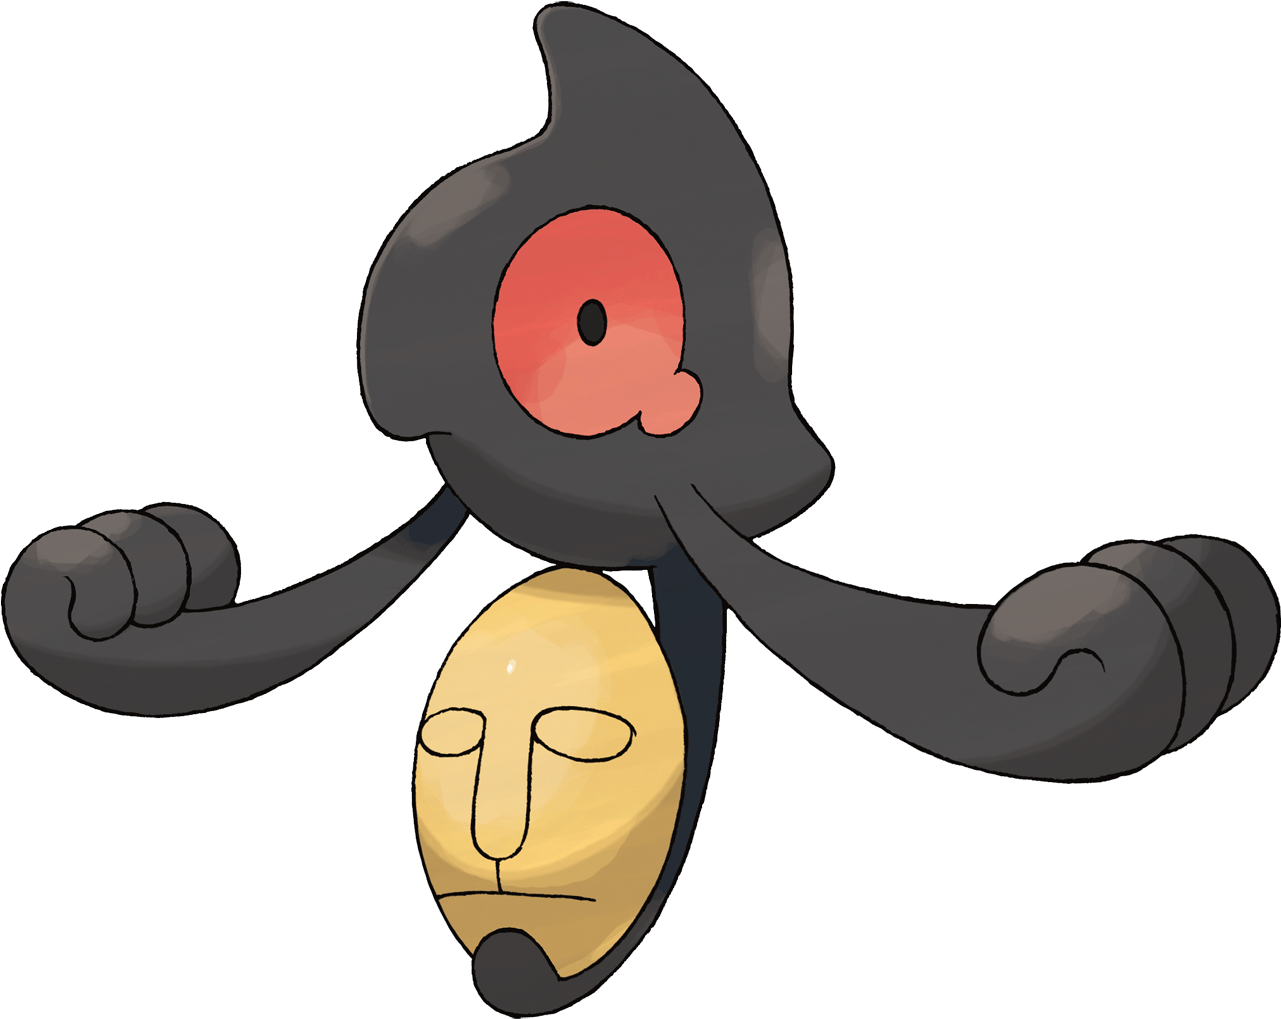 And So, The Most Disturbing Pokémon That Keeps Me Up.